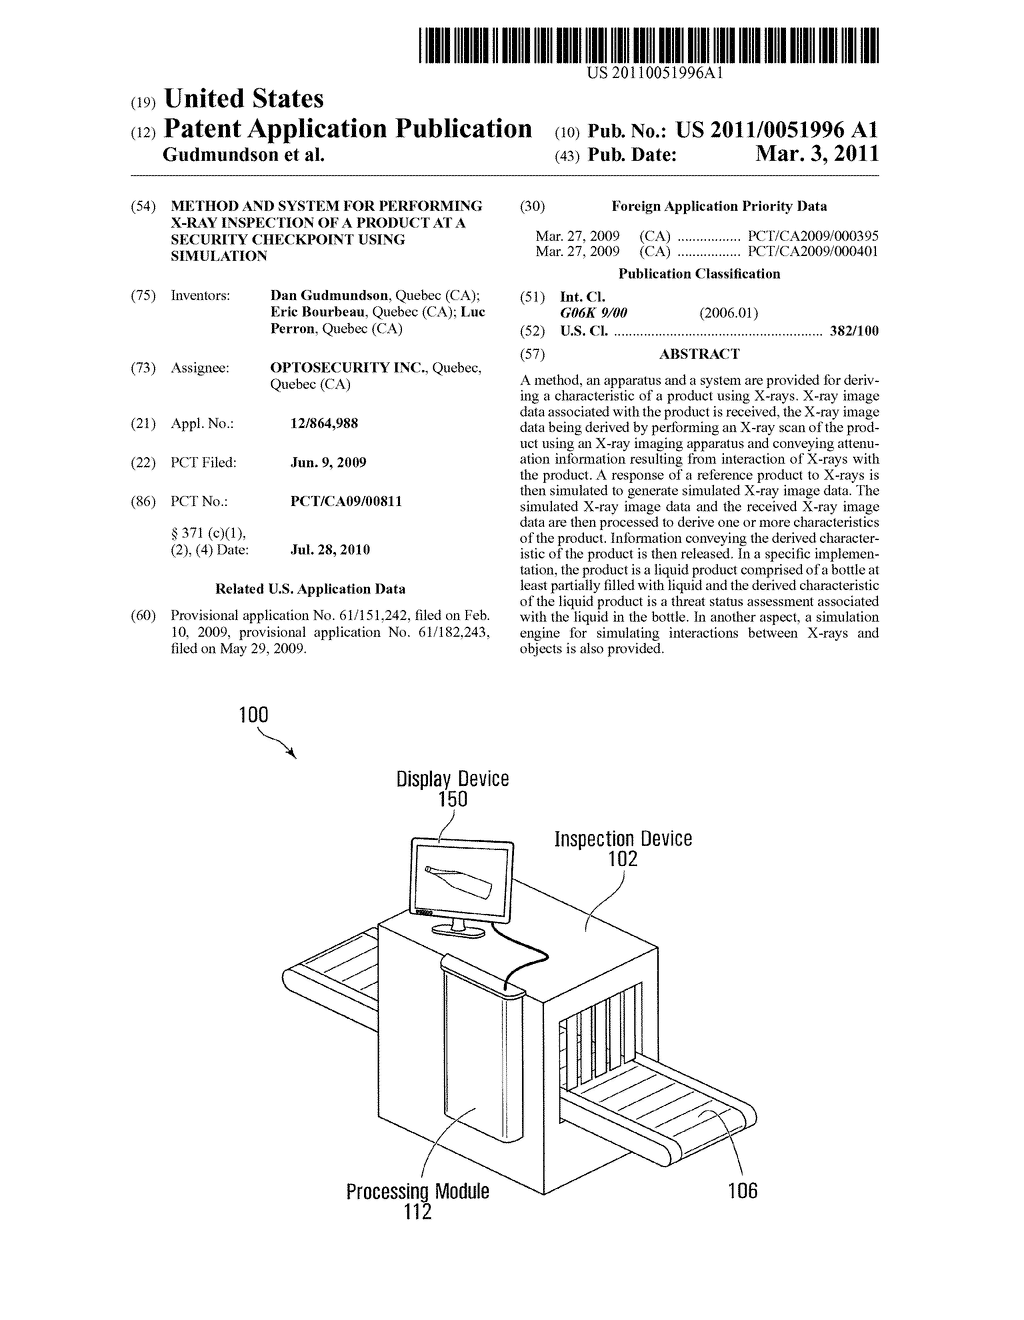 METHOD AND SYSTEM FOR PERFORMING X-RAY INSPECTION OF A PRODUCT AT A SECURITY CHECKPOINT USING SIMULATION - diagram, schematic, and image 01